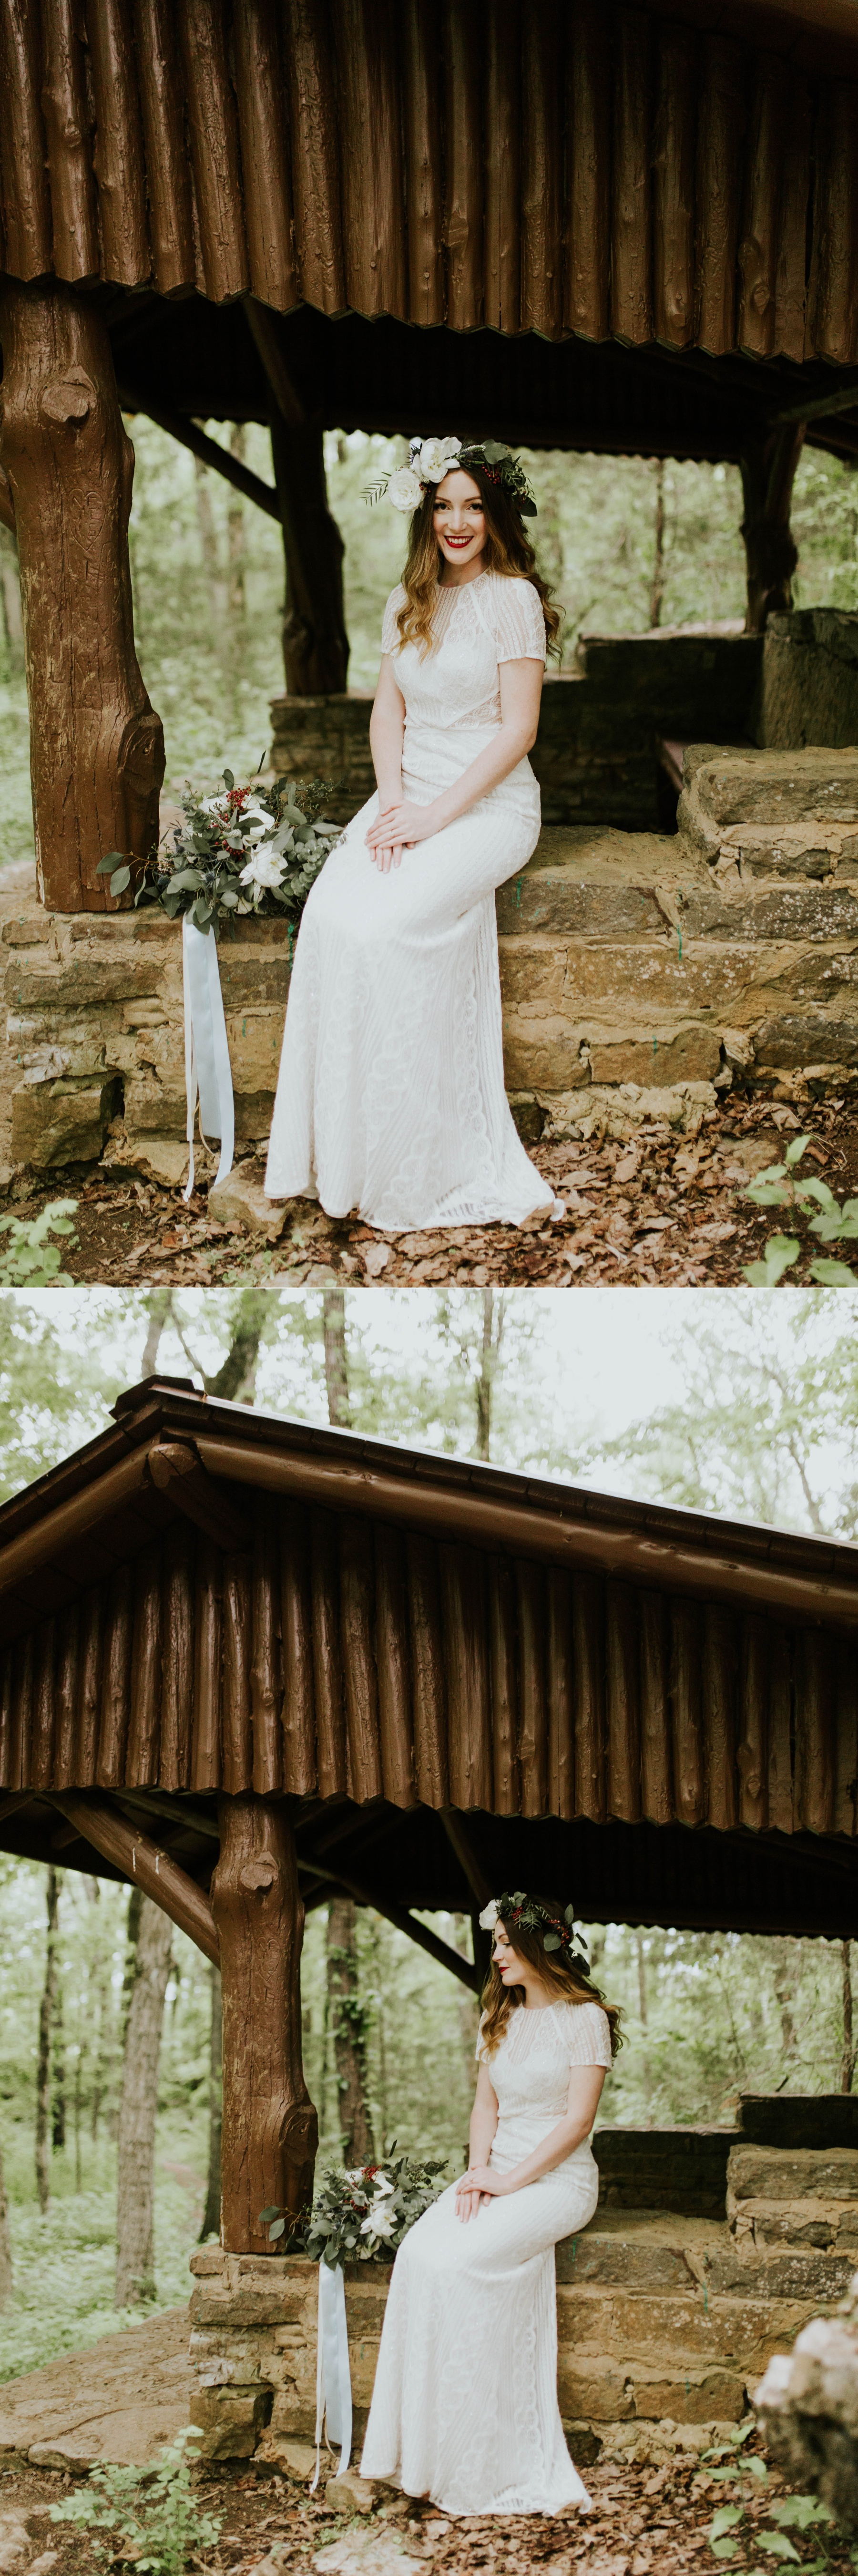 ThroughVictoriasLens_CedarsOfLebanon_Bridals15.jpg